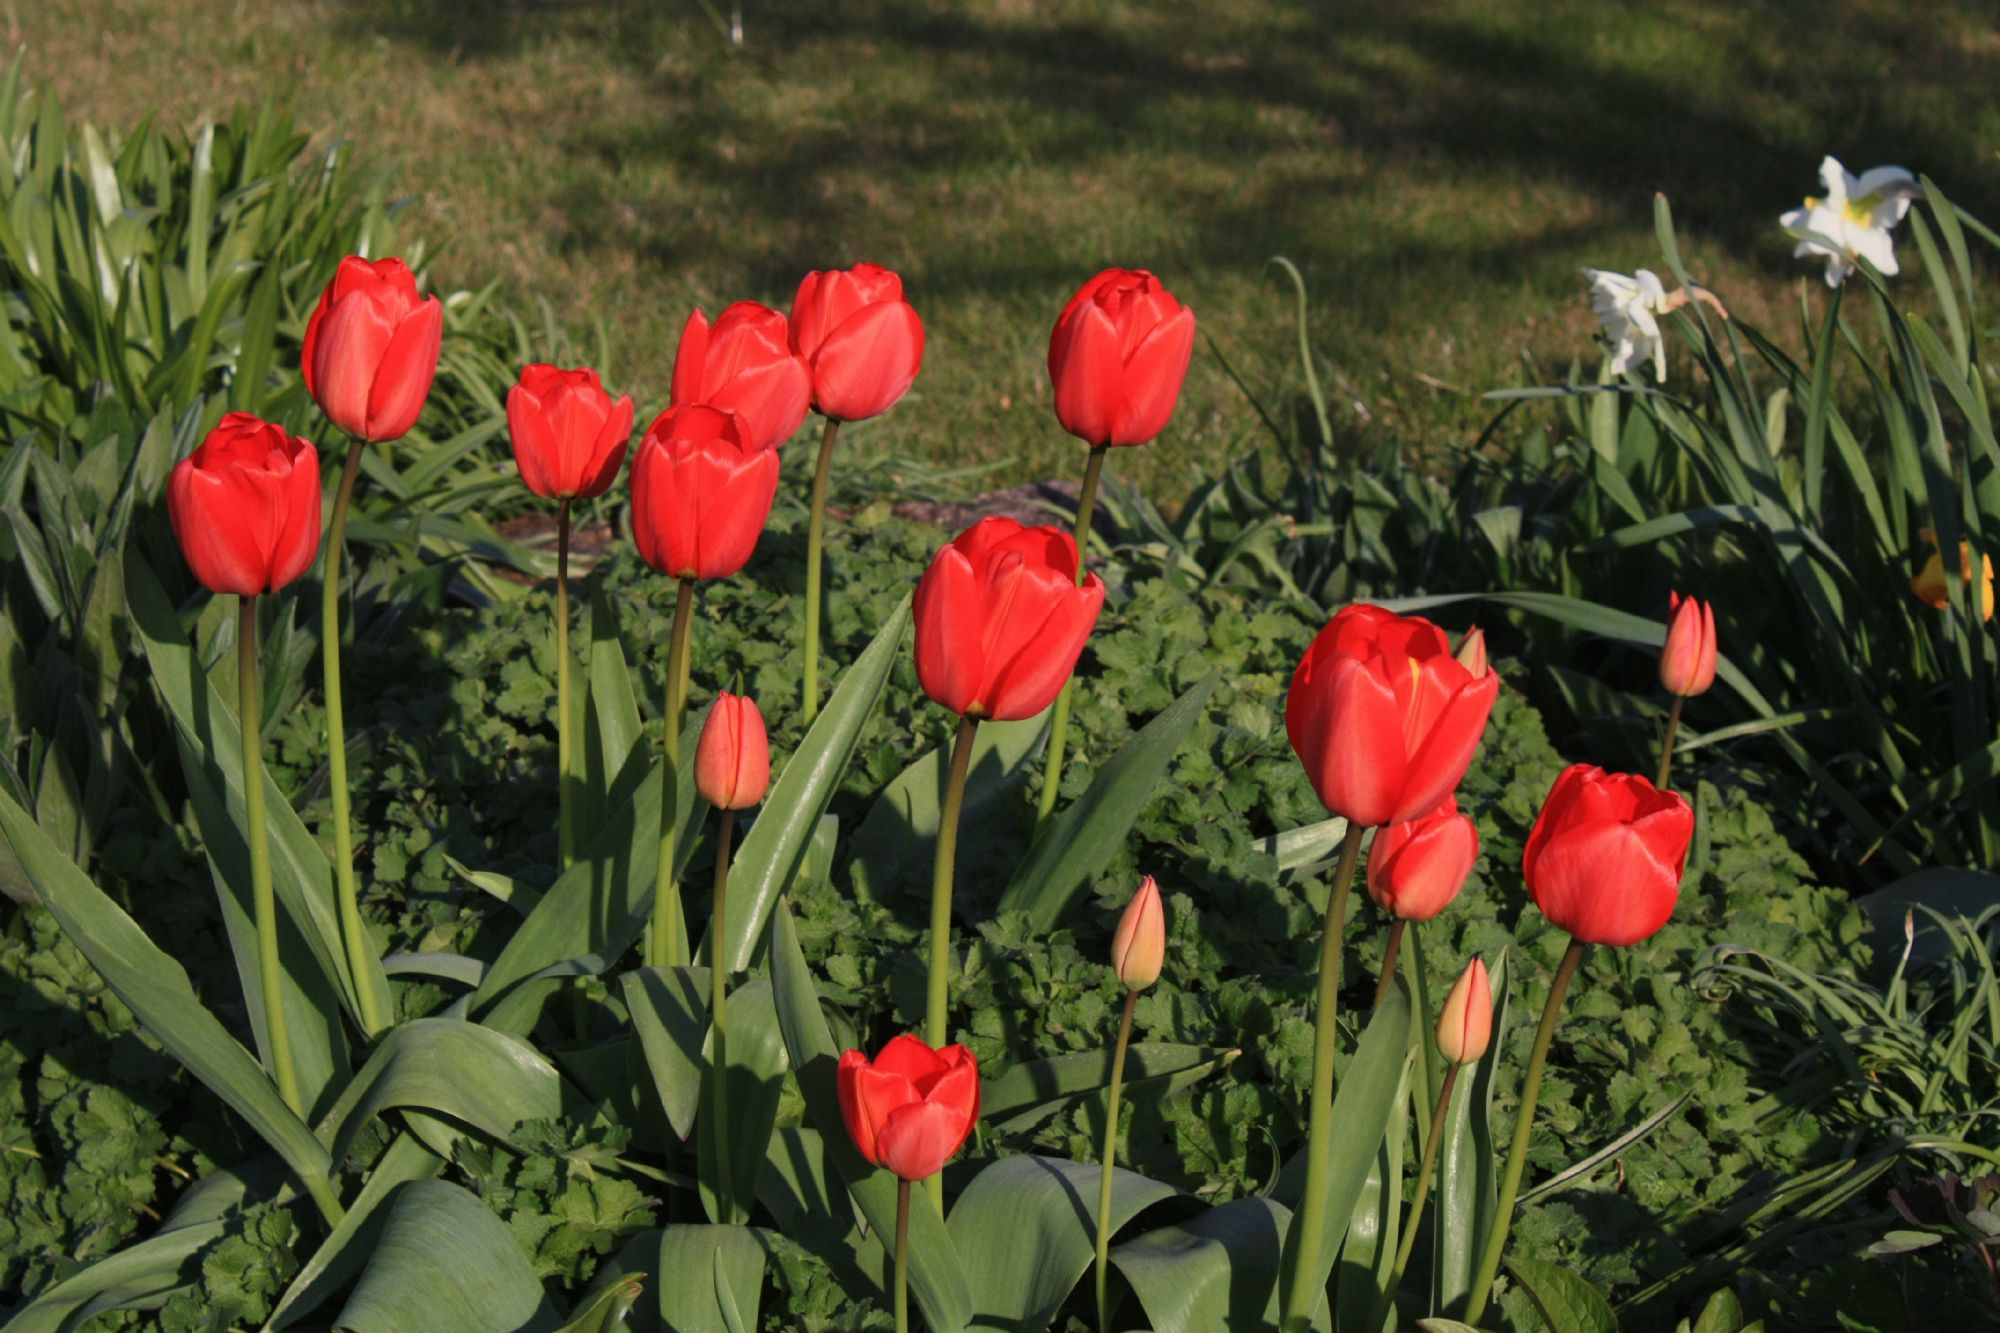 Red Tulips at Nordlys